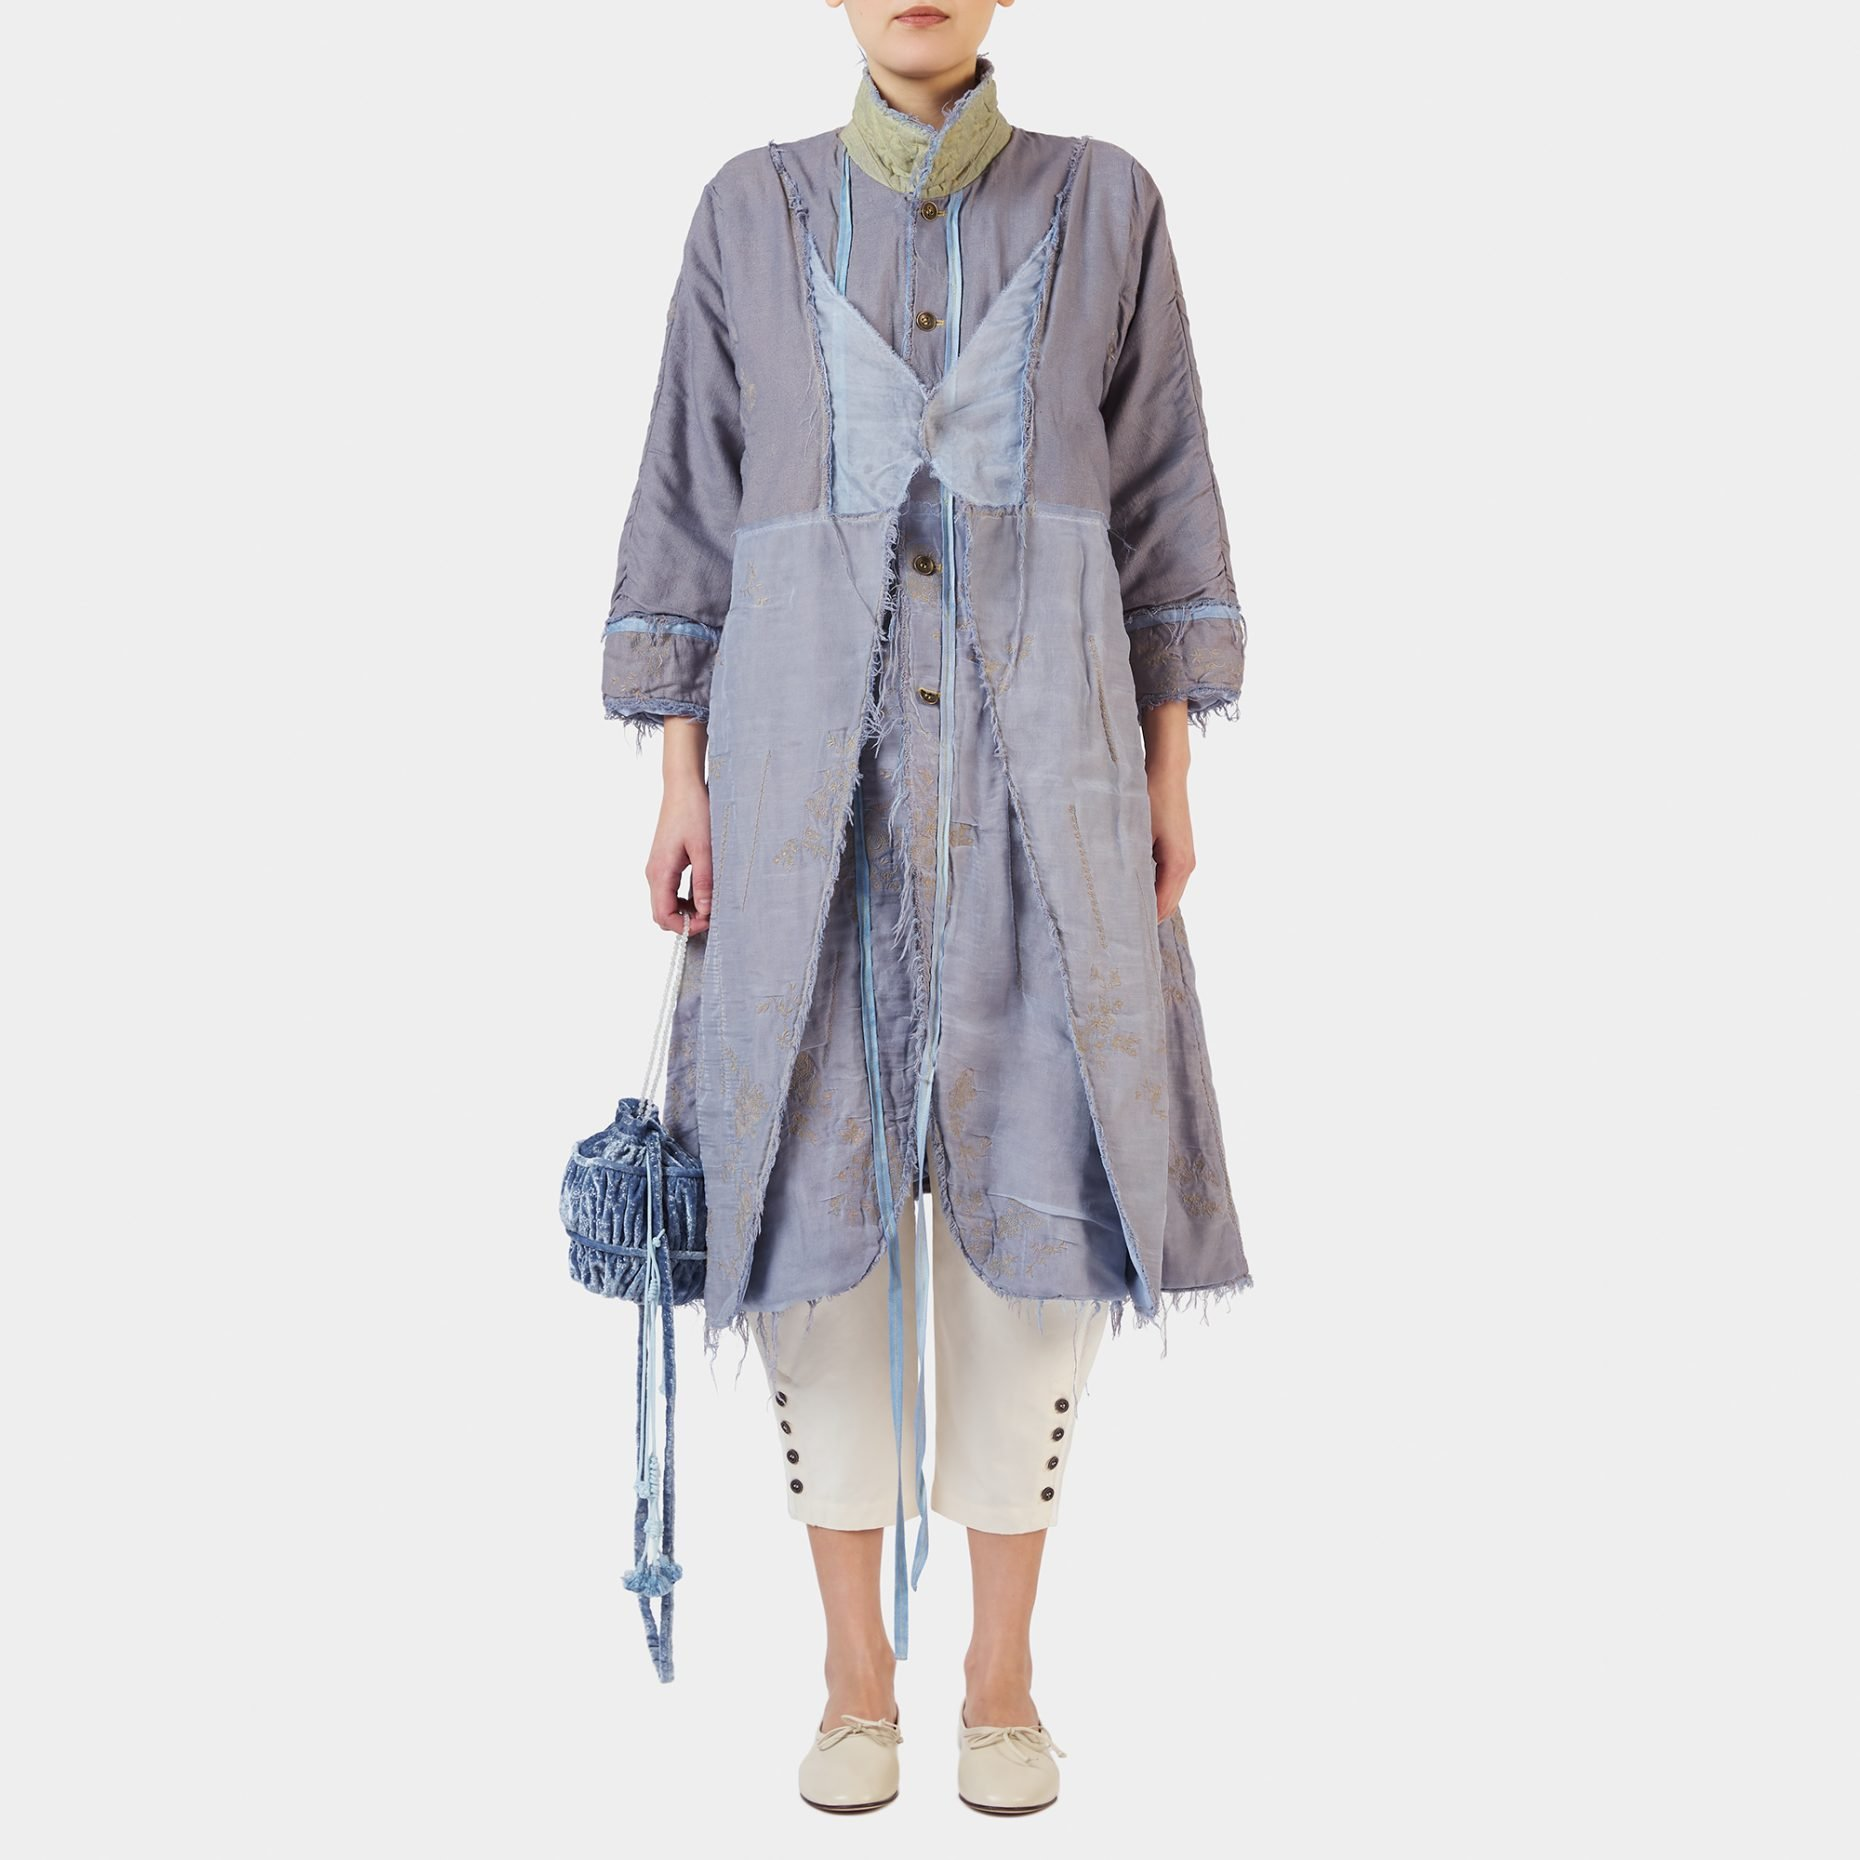 Renli Su Hand Dyed Long Jacket